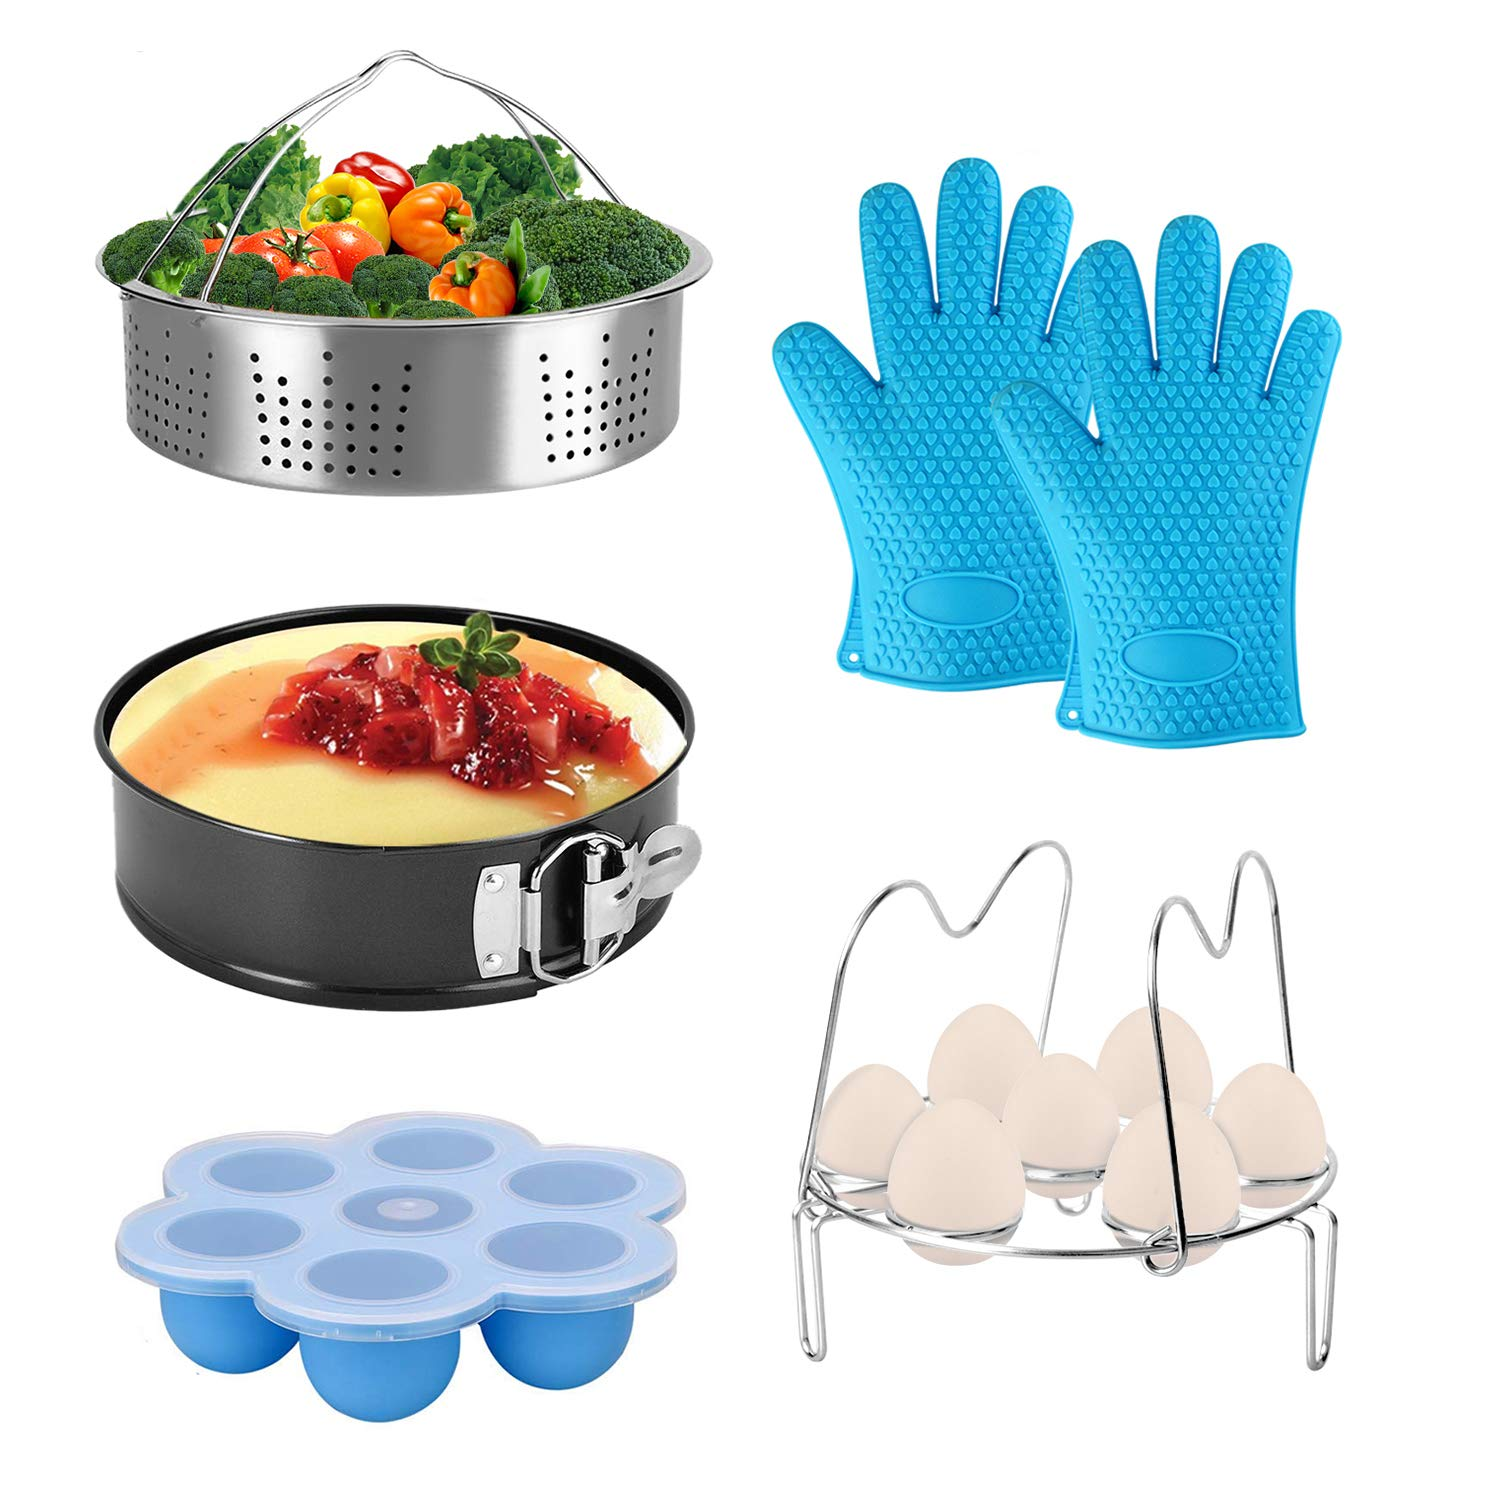 Accessories fit 8qt 6qt Instant Pot Pressure Cooker Upgrade Egg Rack with Handle, Egg Bites Mold with Lid, Vegetable Steamer Basket, Non-stick Springform Pan and Silicone Oven BBQ Glove Mitts